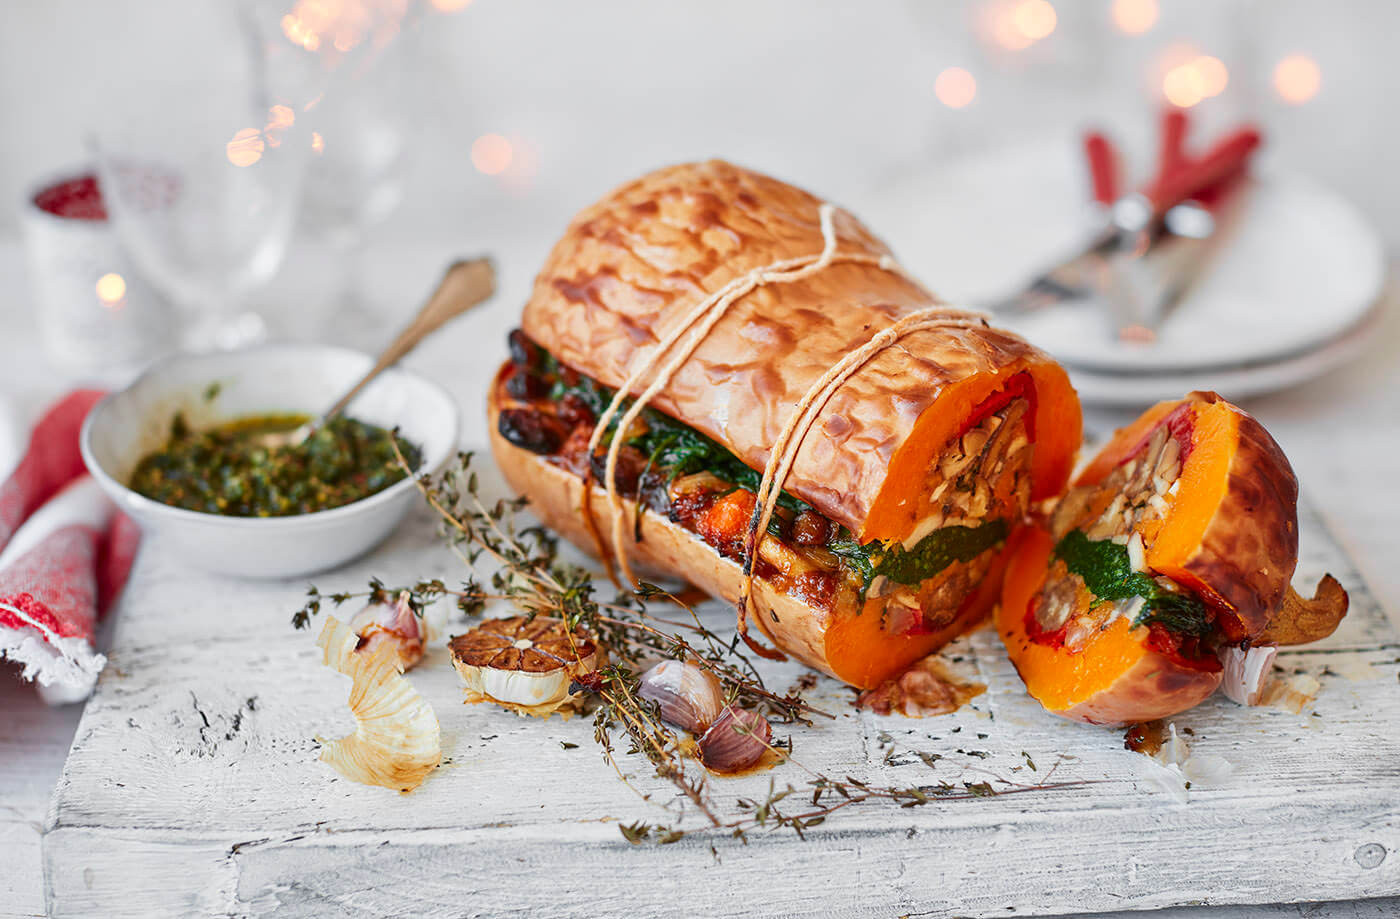 Vegetarian Recipes For Christmas  Ve arian and Vegan Holiday Recipes